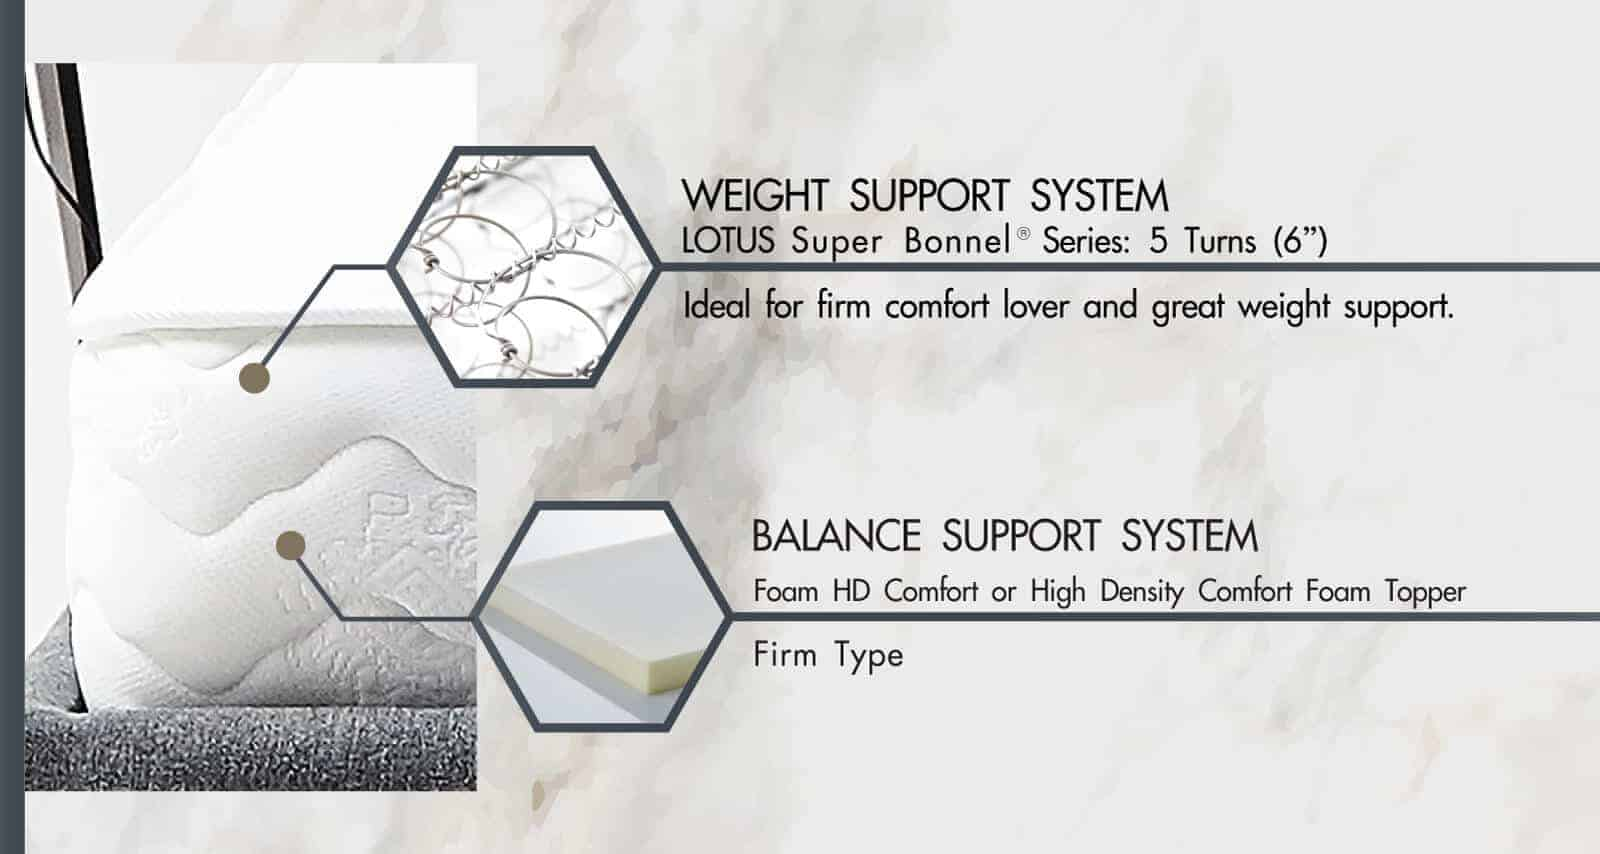 Lotus Foam Spring Mattress Delight – Ideal Firm Mattress – Thickness 10 inches – Warranty 10 years 8